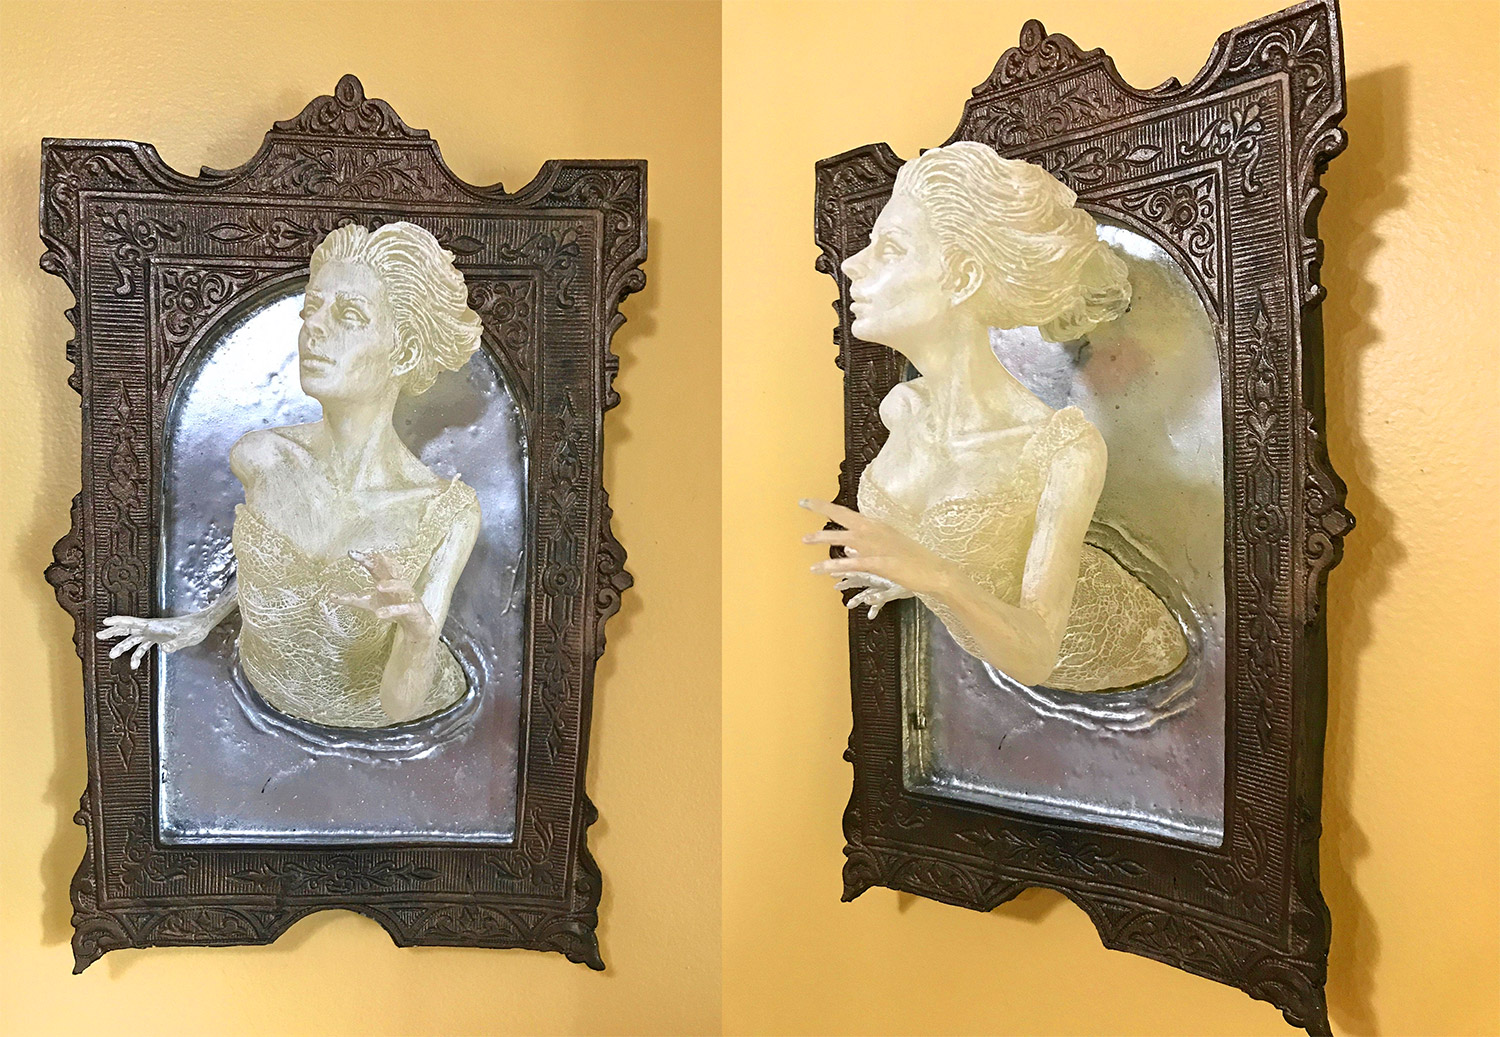 Super Creepy Ghost In The Mirror Wall Plaque That Glows In The Dark - 3D Mirror Ghost Figure Sculpture